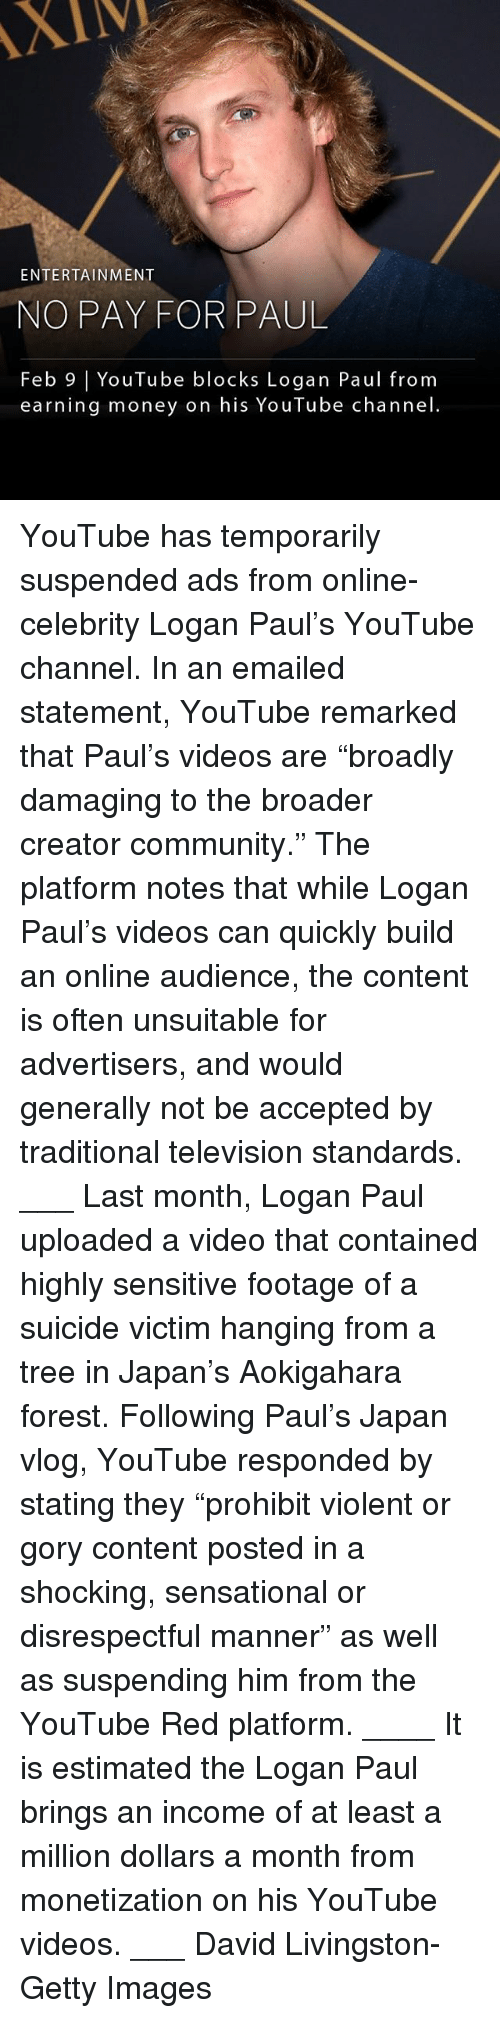 "Community, Memes, and Money: XIV  ENTERTAINMENT  NO PAY FOR PAUL  Feb 9 | YouTube blocks Logan Paul from  earning money on his YouTube channel YouTube has temporarily suspended ads from online-celebrity Logan Paul's YouTube channel. In an emailed statement, YouTube remarked that Paul's videos are ""broadly damaging to the broader creator community."" The platform notes that while Logan Paul's videos can quickly build an online audience, the content is often unsuitable for advertisers, and would generally not be accepted by traditional television standards. ___ Last month, Logan Paul uploaded a video that contained highly sensitive footage of a suicide victim hanging from a tree in Japan's Aokigahara forest. Following Paul's Japan vlog, YouTube responded by stating they ""prohibit violent or gory content posted in a shocking, sensational or disrespectful manner"" as well as suspending him from the YouTube Red platform. ____ It is estimated the Logan Paul brings an income of at least a million dollars a month from monetization on his YouTube videos. ___ David Livingston-Getty Images"